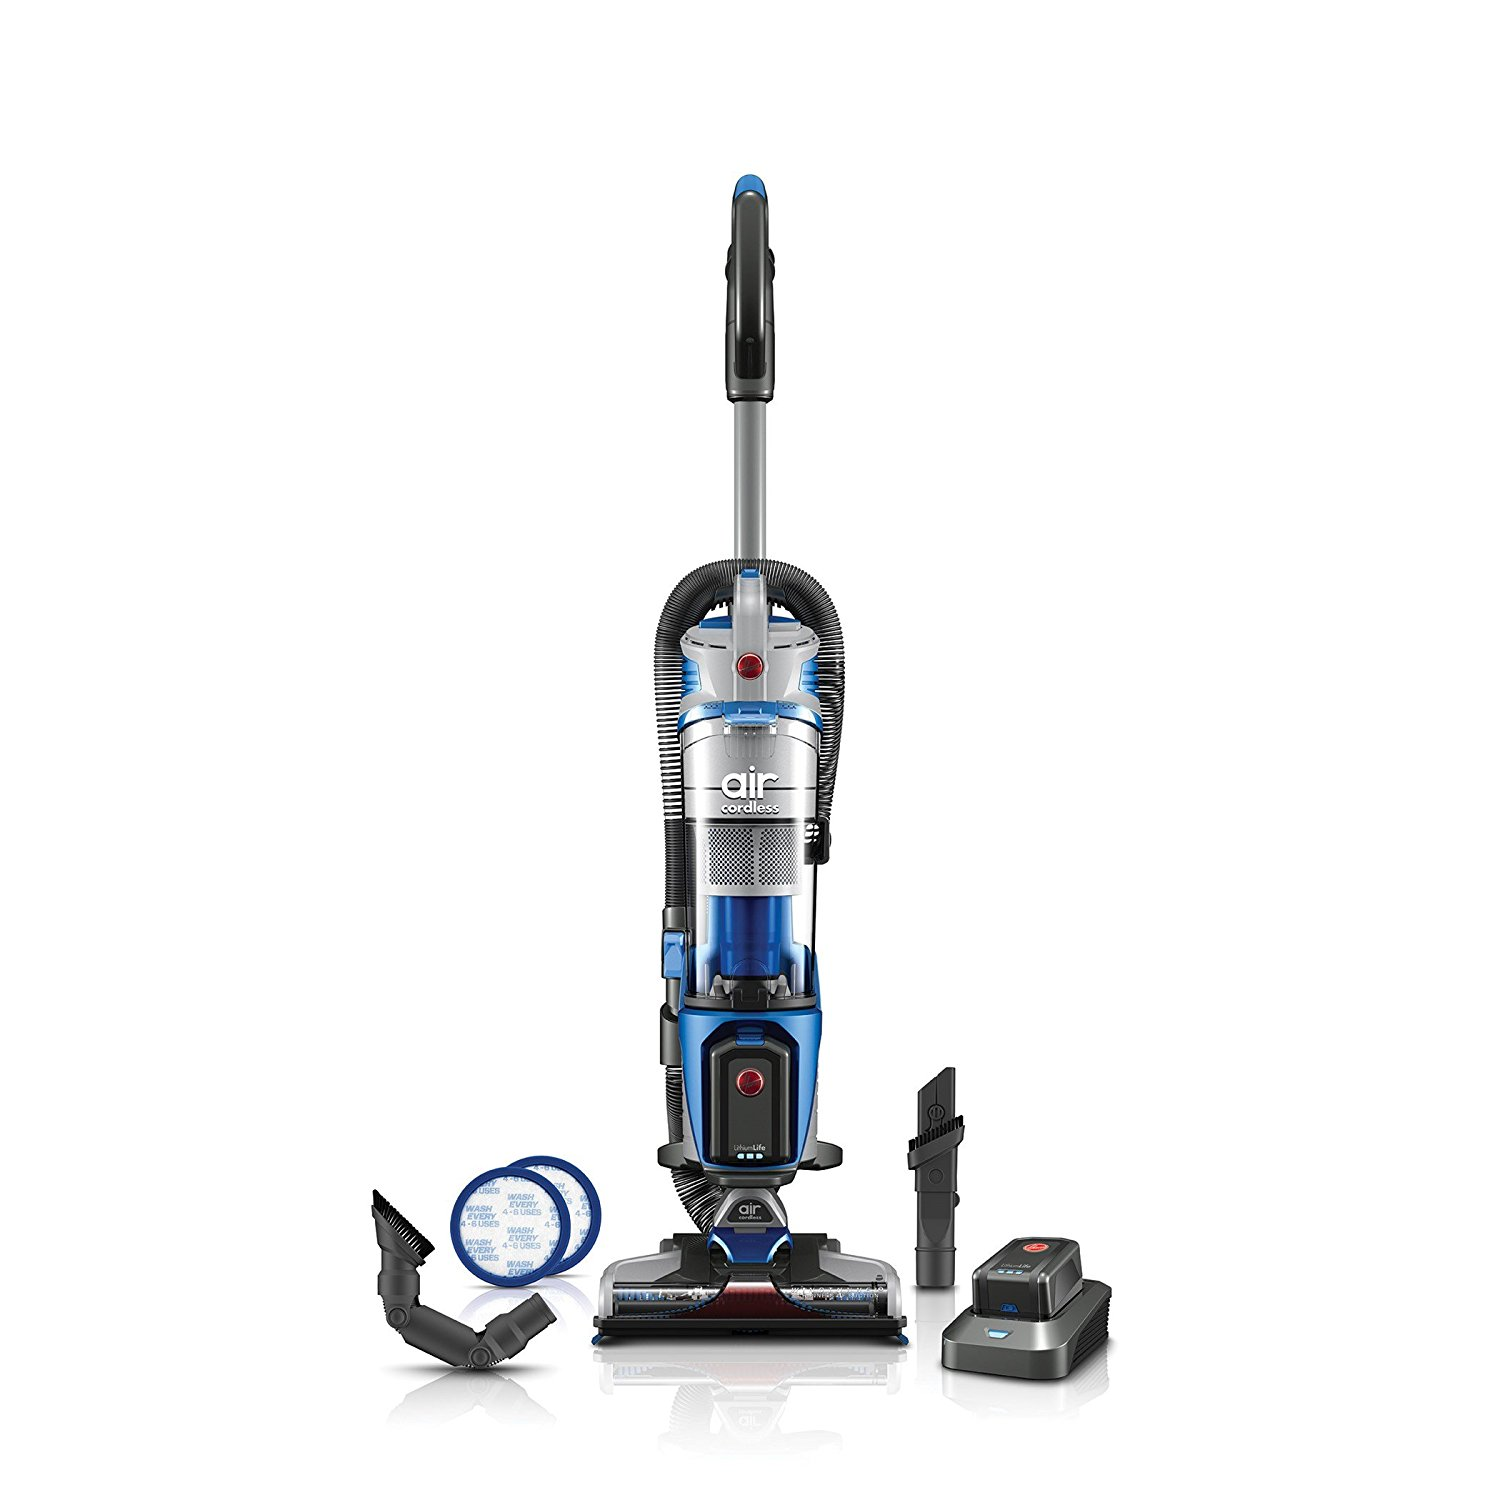 Hoover cordless vacuum reviews Air Lift